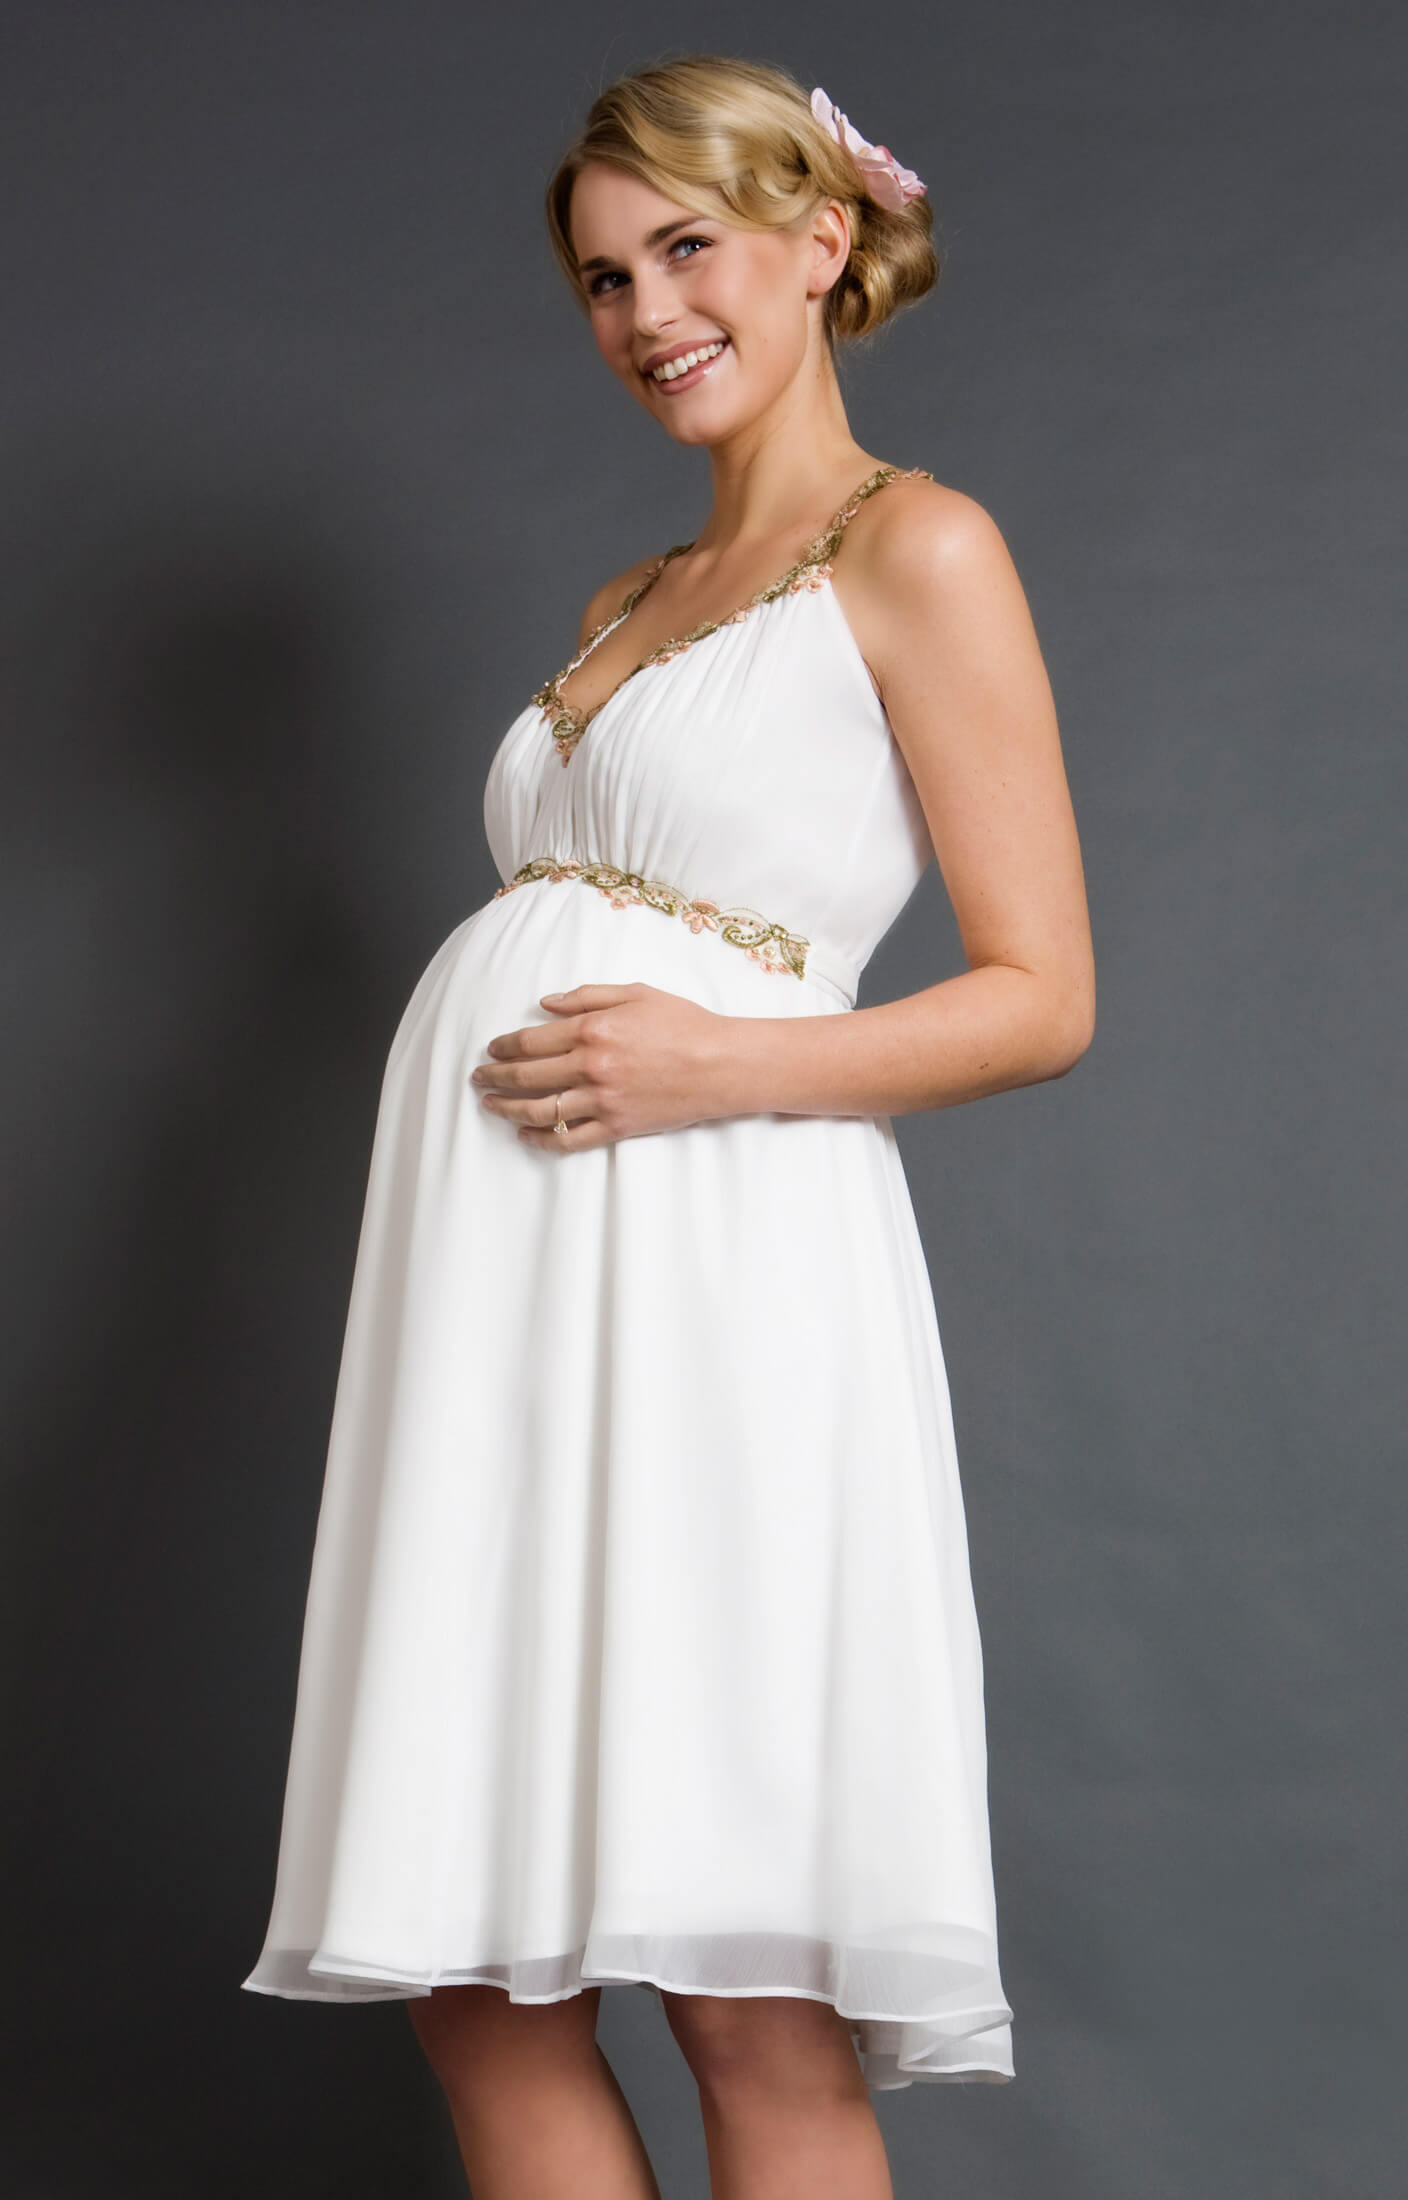 Grecian Maternity Dress greek goddess wedding dress Grecian Maternity Dress by Tiffany Rose